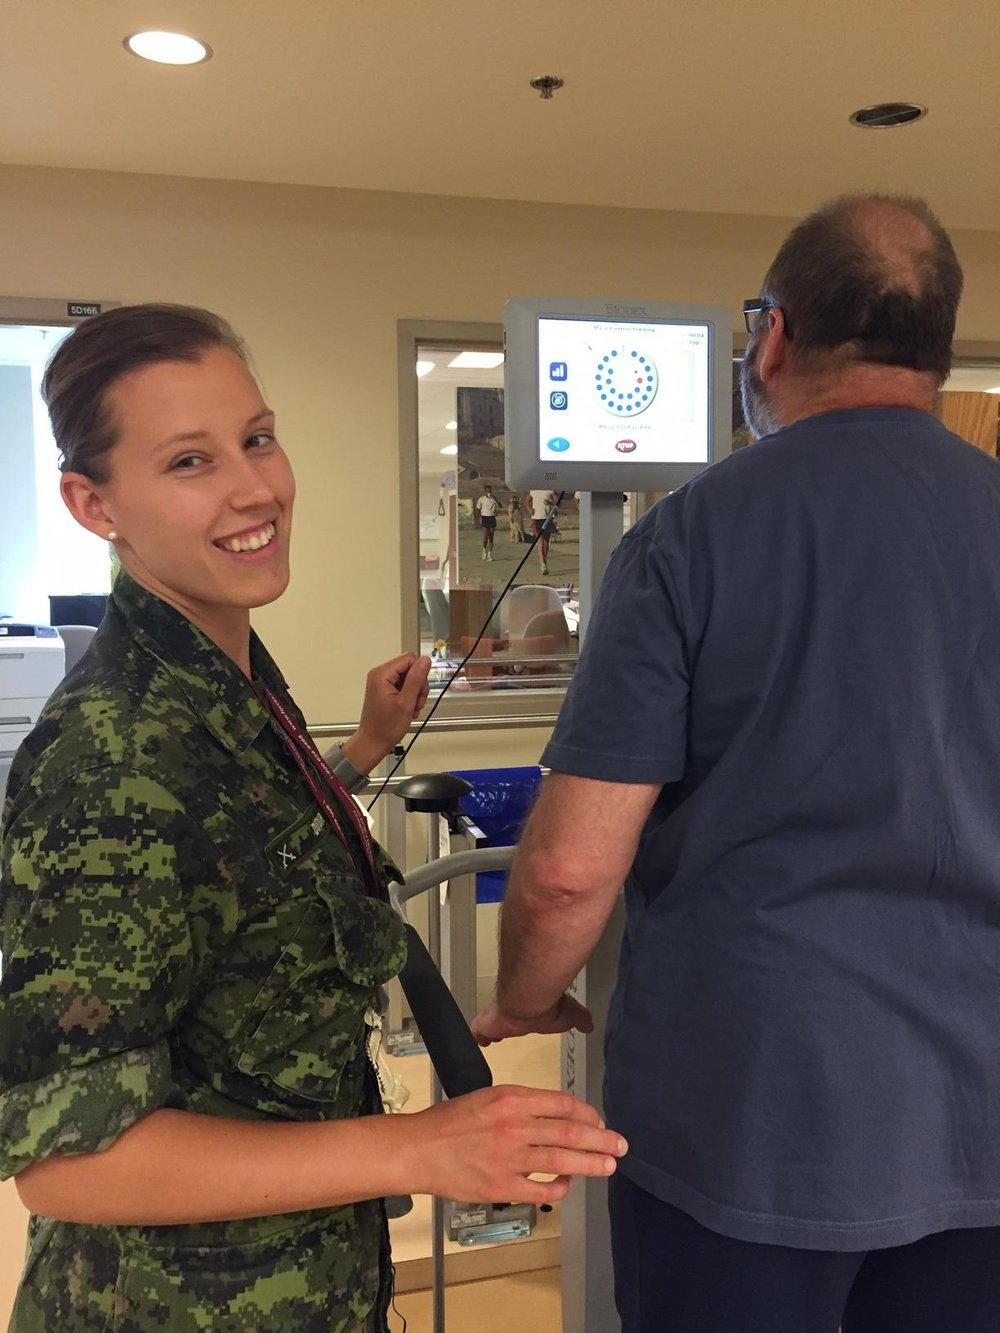 Canadian Army Physiotherapy Officer Captain Carole-Anne Dufour knew from a young age that she wanted to work in health care. On the suggestion of relatives, she decided to practice in the Canadian Armed Forces and now says it is an ideal fit. Photo provided by: Captain Carole-Anne Dufour